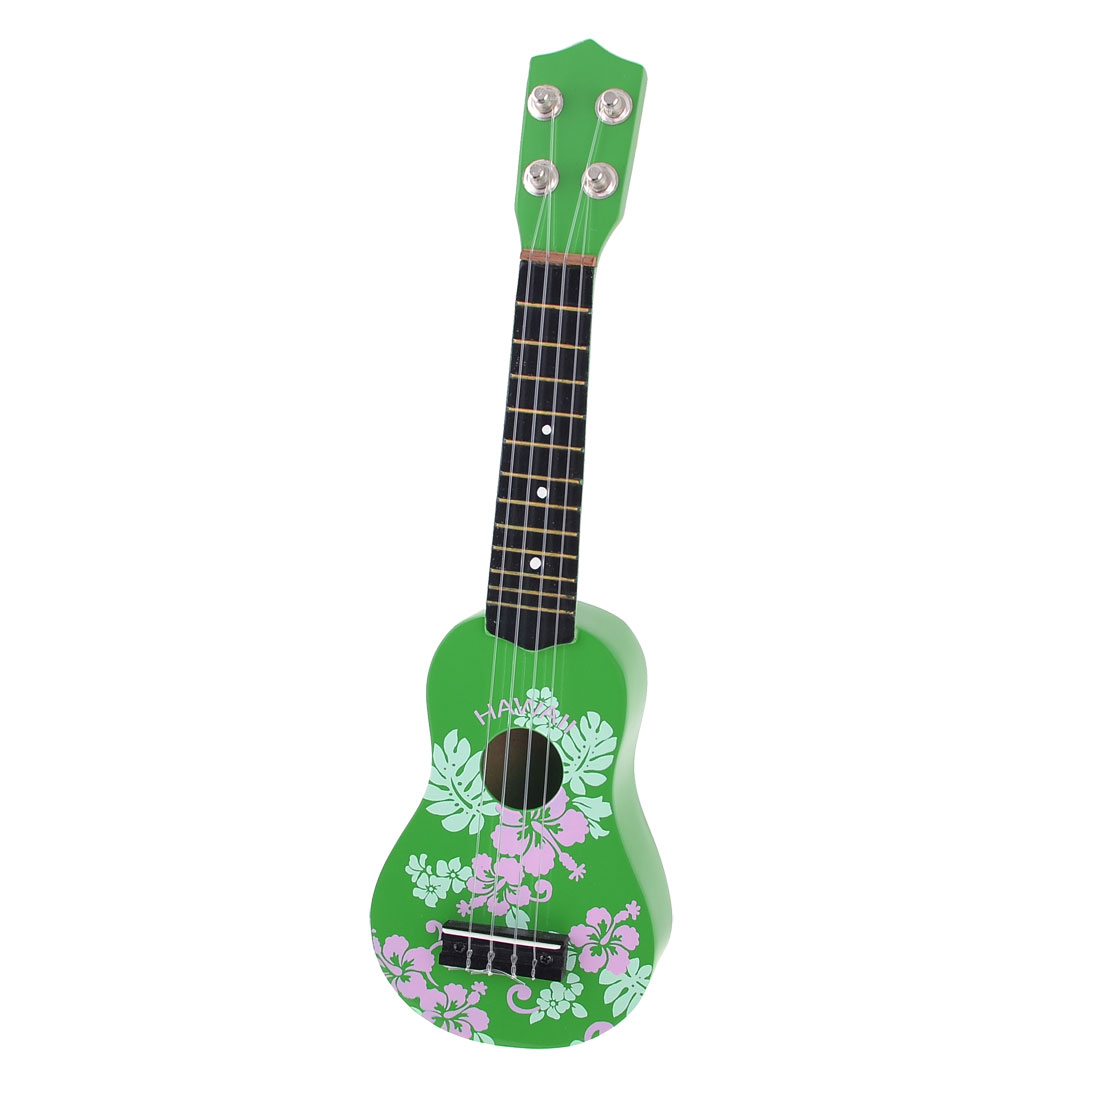 Child 4 Strings Flower Pattern Wood Hawaiii Guitar Ukulele Musical Toy Green